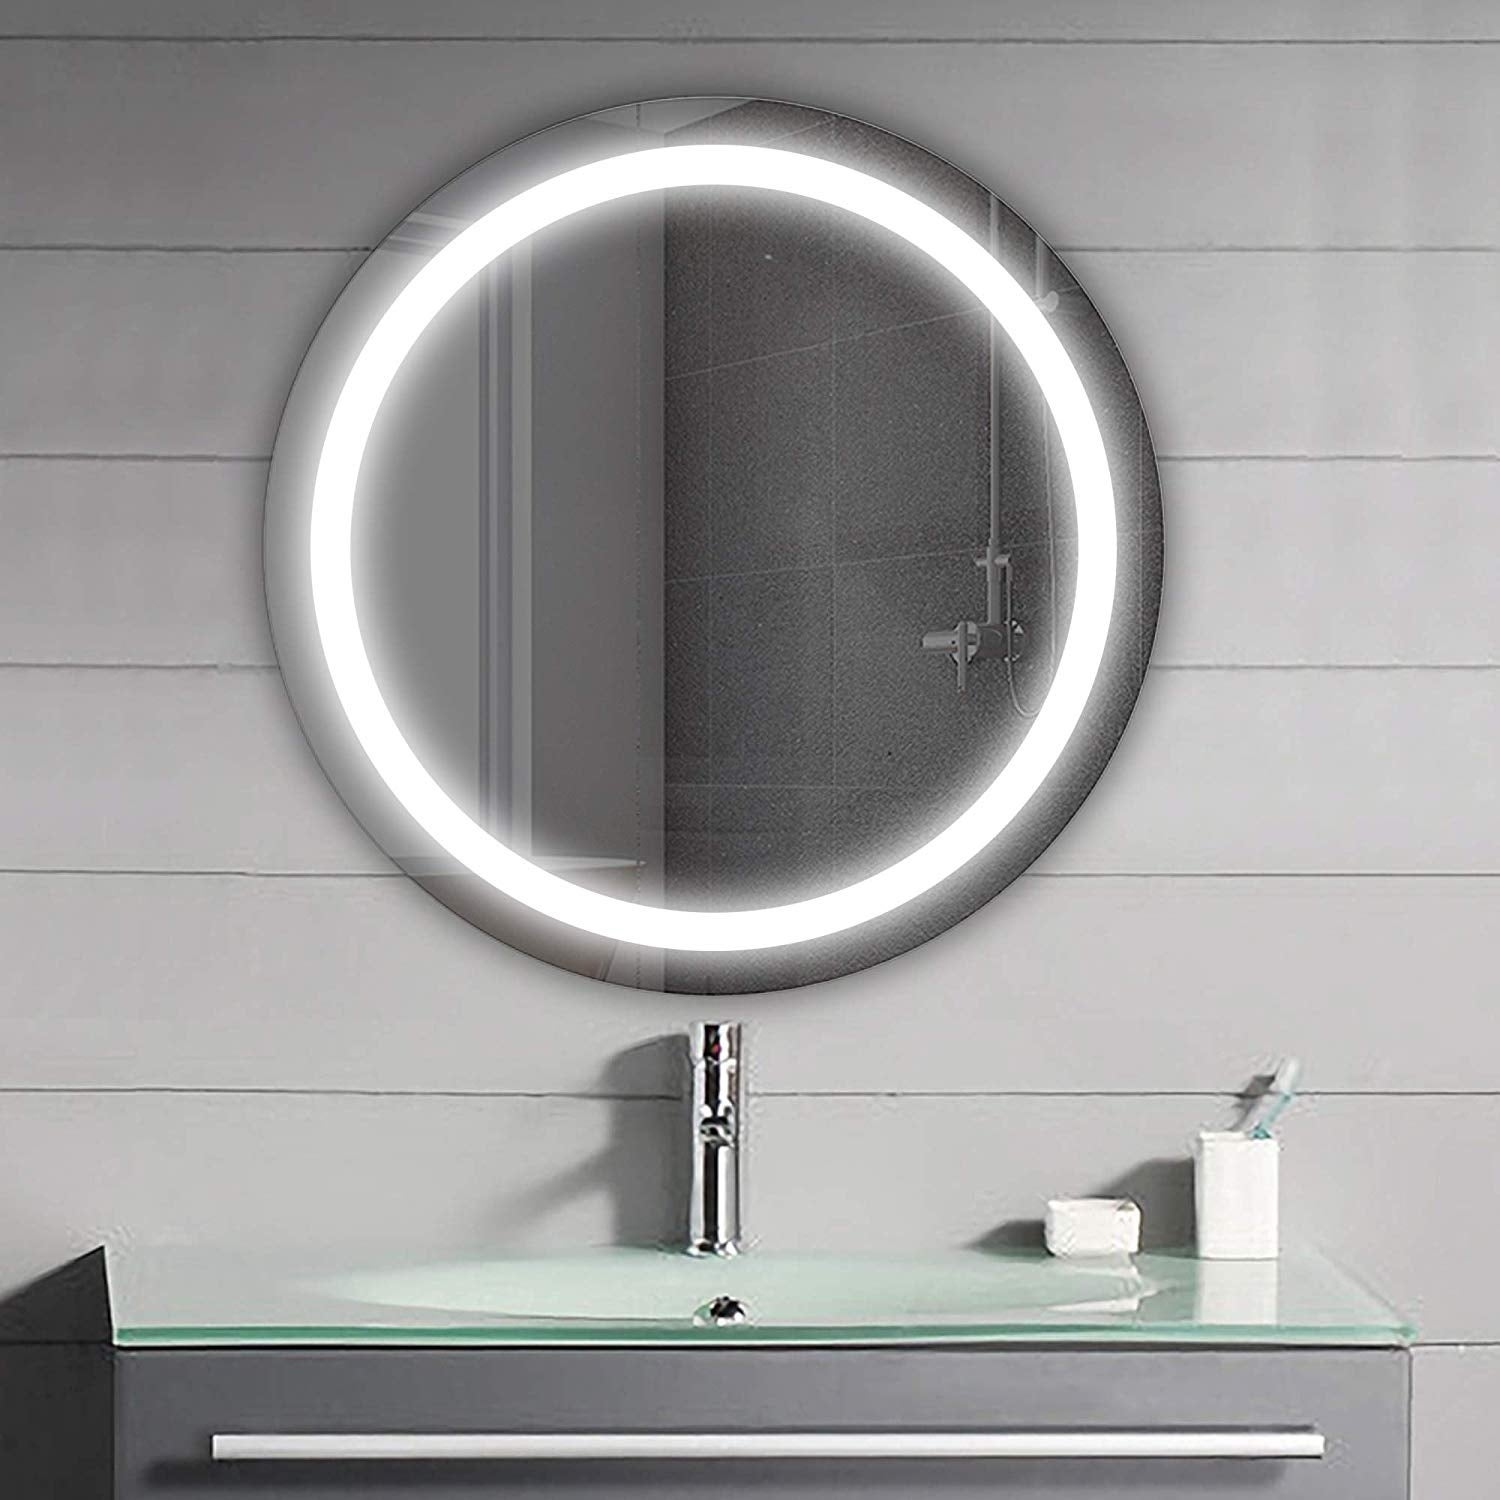 Vanity Art 24 Frameless Round Led Lighted Illuminated Vertical Bathroom Vanity Wall Mirror With Sensor Switch Clear Overstock 12364408